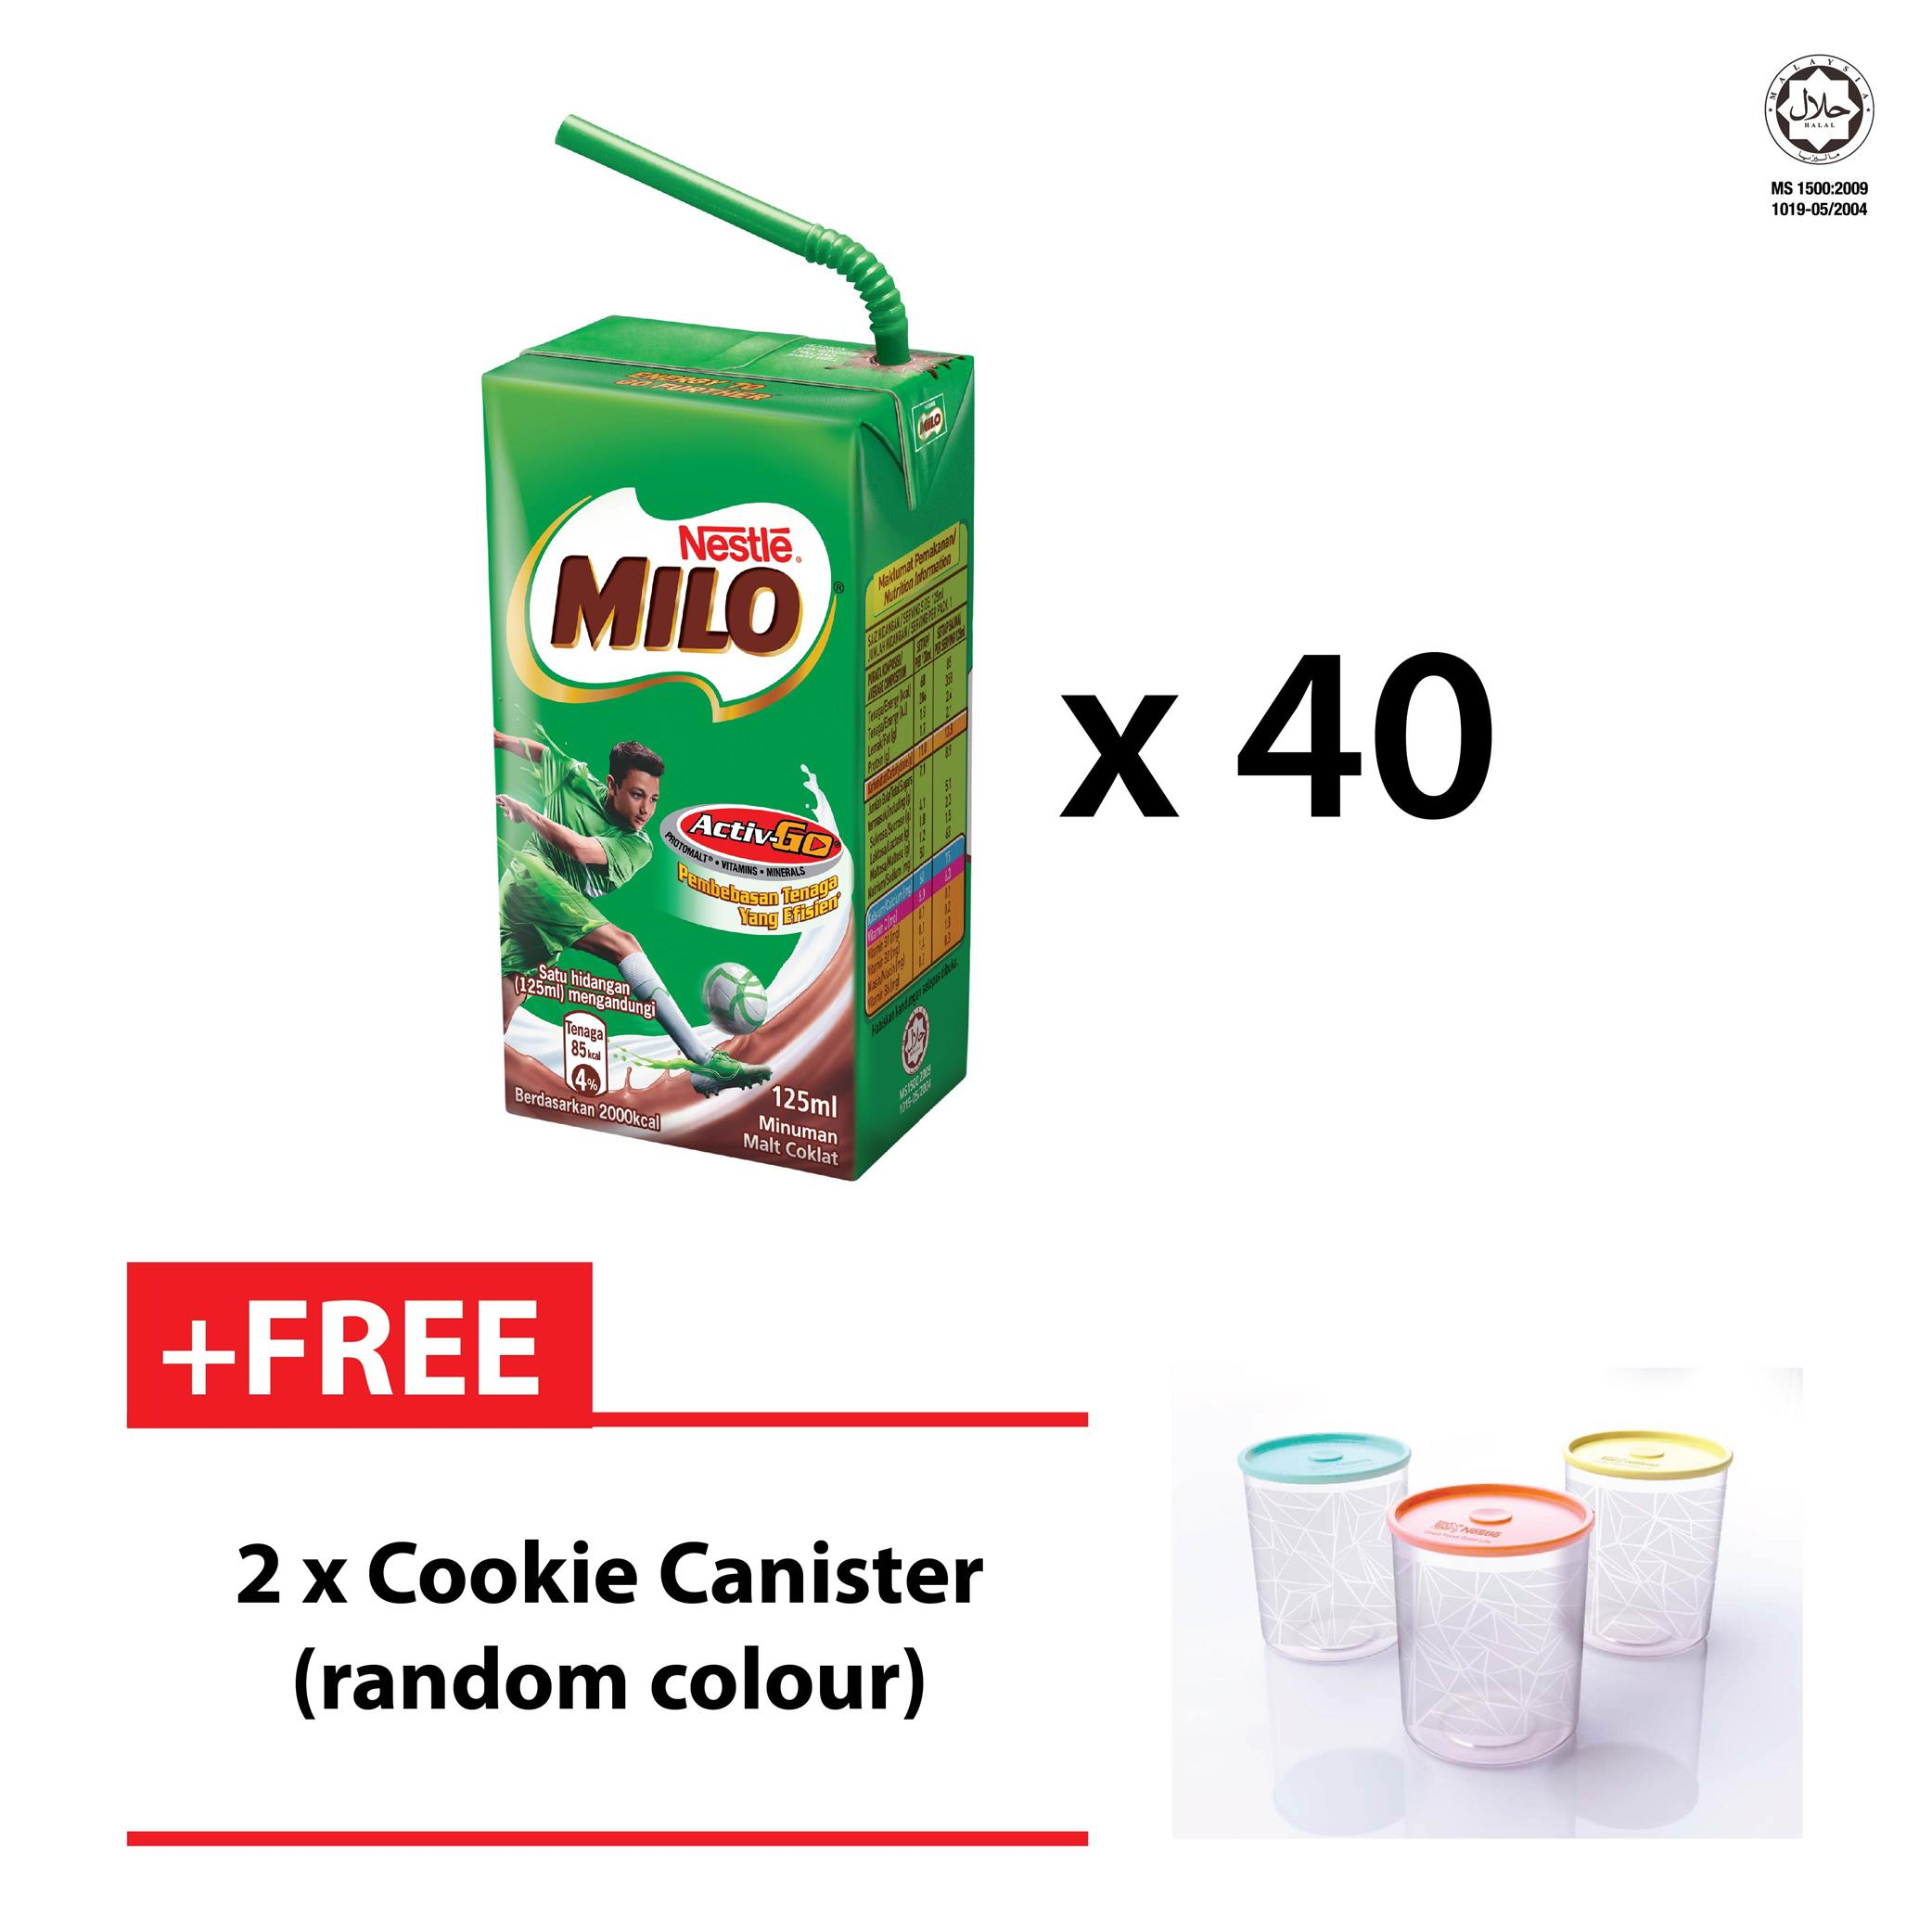 c1412df76b0 MILO UHT 125ML, 1 CARTON (40 UNITS) FREE 2 COOKIE CANISTER (SPECIAL OF